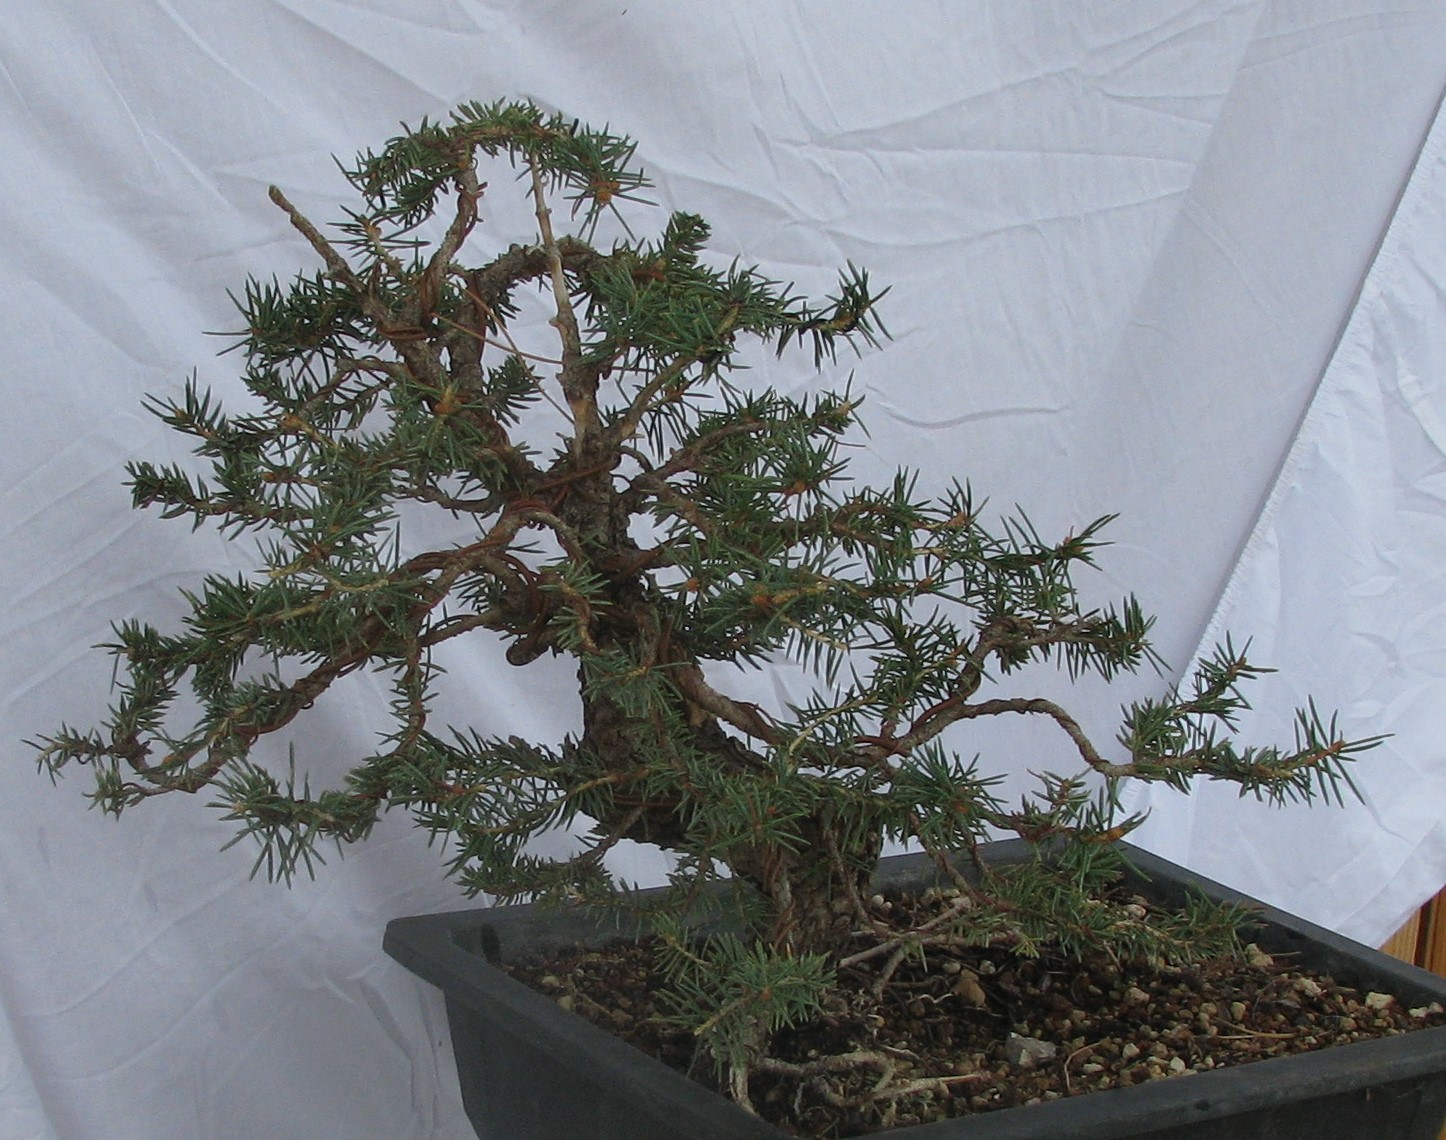 Picea Pungens Colorado Blue Spruce Bonsai Colorado Rocky Mountain Bonsai Suiseki